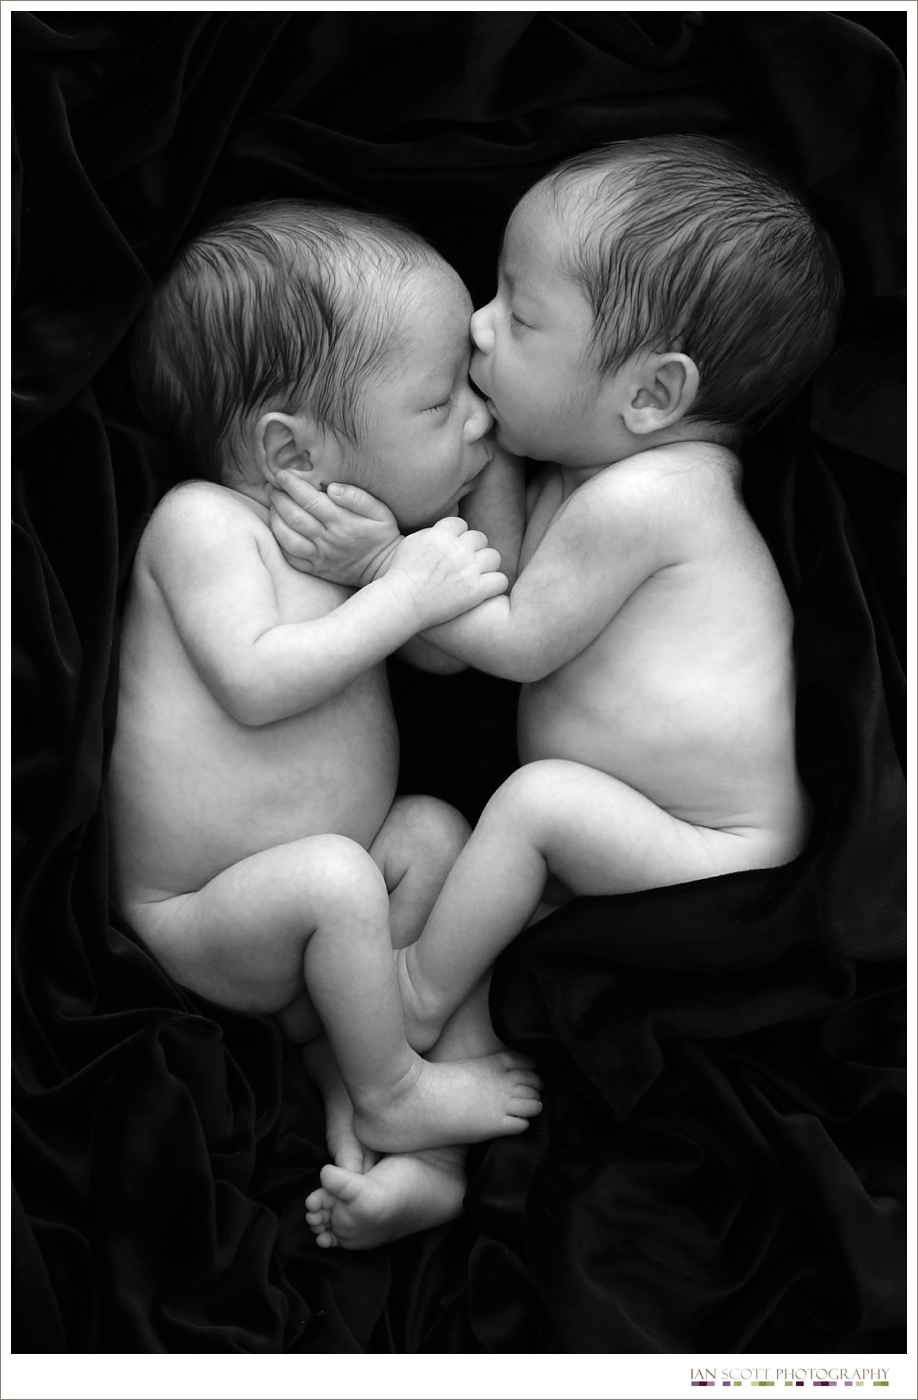 Black and white photograph of newborn twins